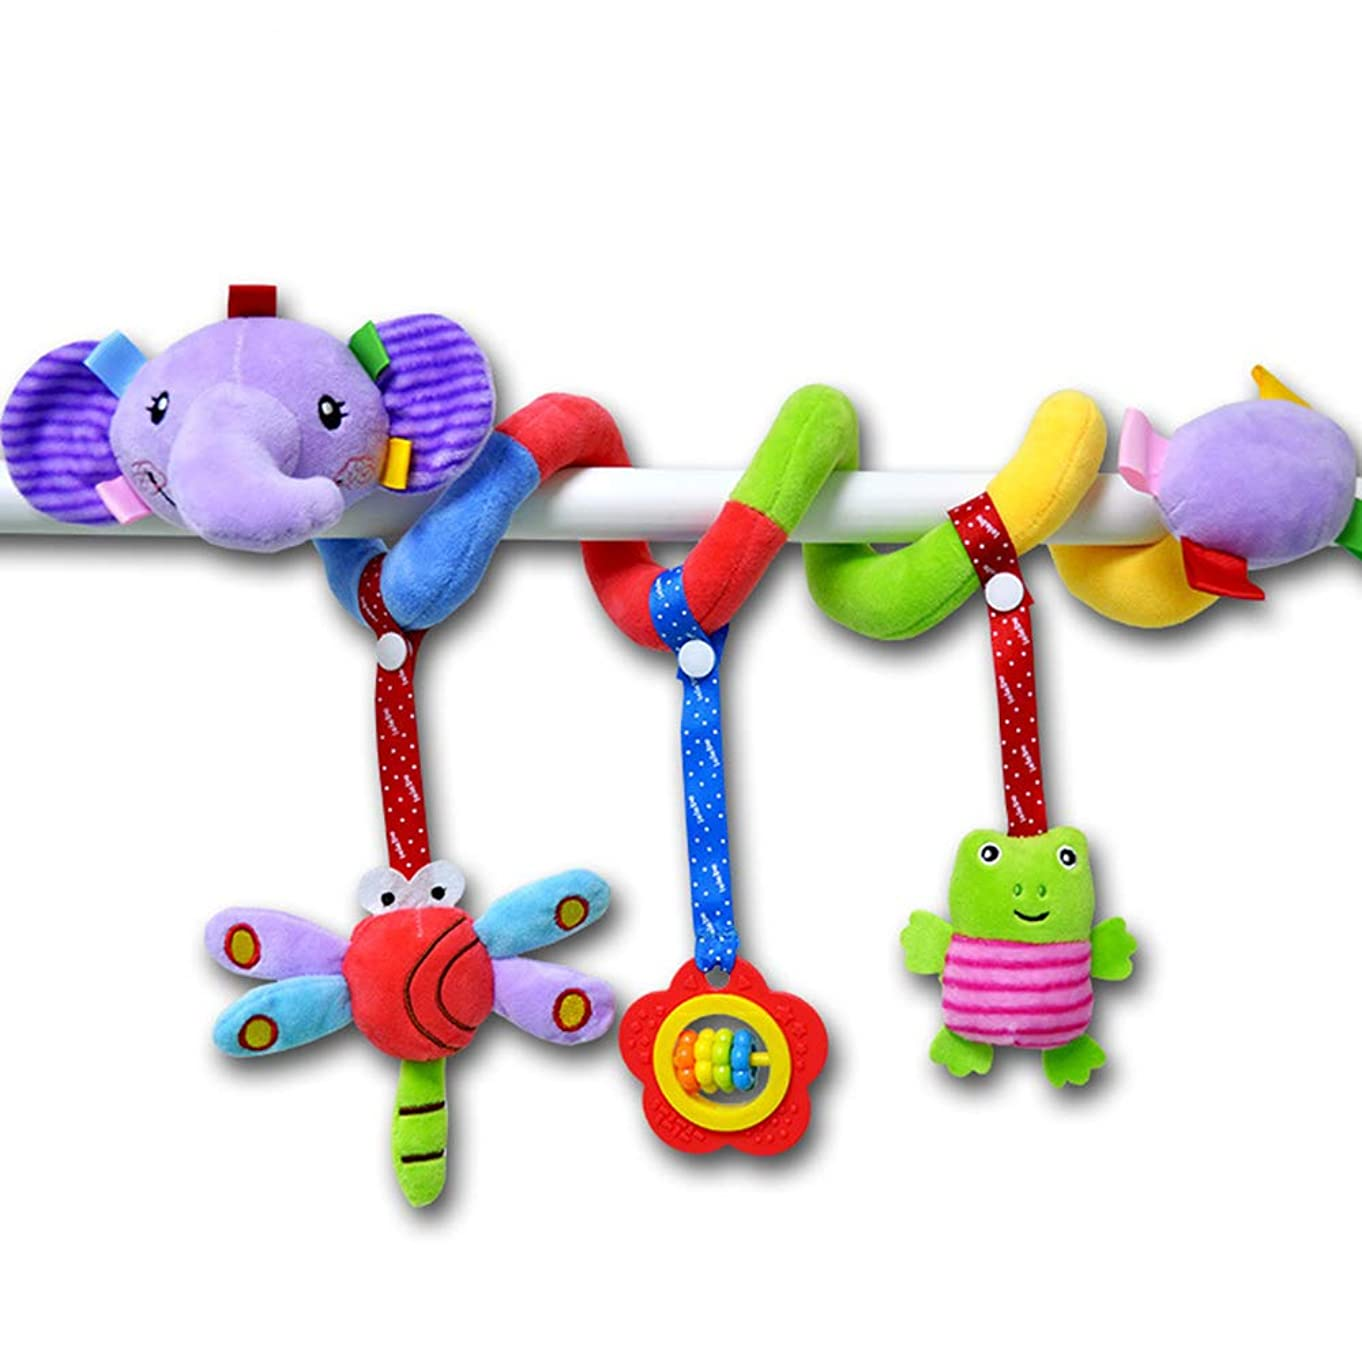 Elephant Cartoon Stroller Arch Rattles Hanging Cute Plush Animals Style Bed Around for Baby Education Toy Spiral Wrap Around Crib Bed